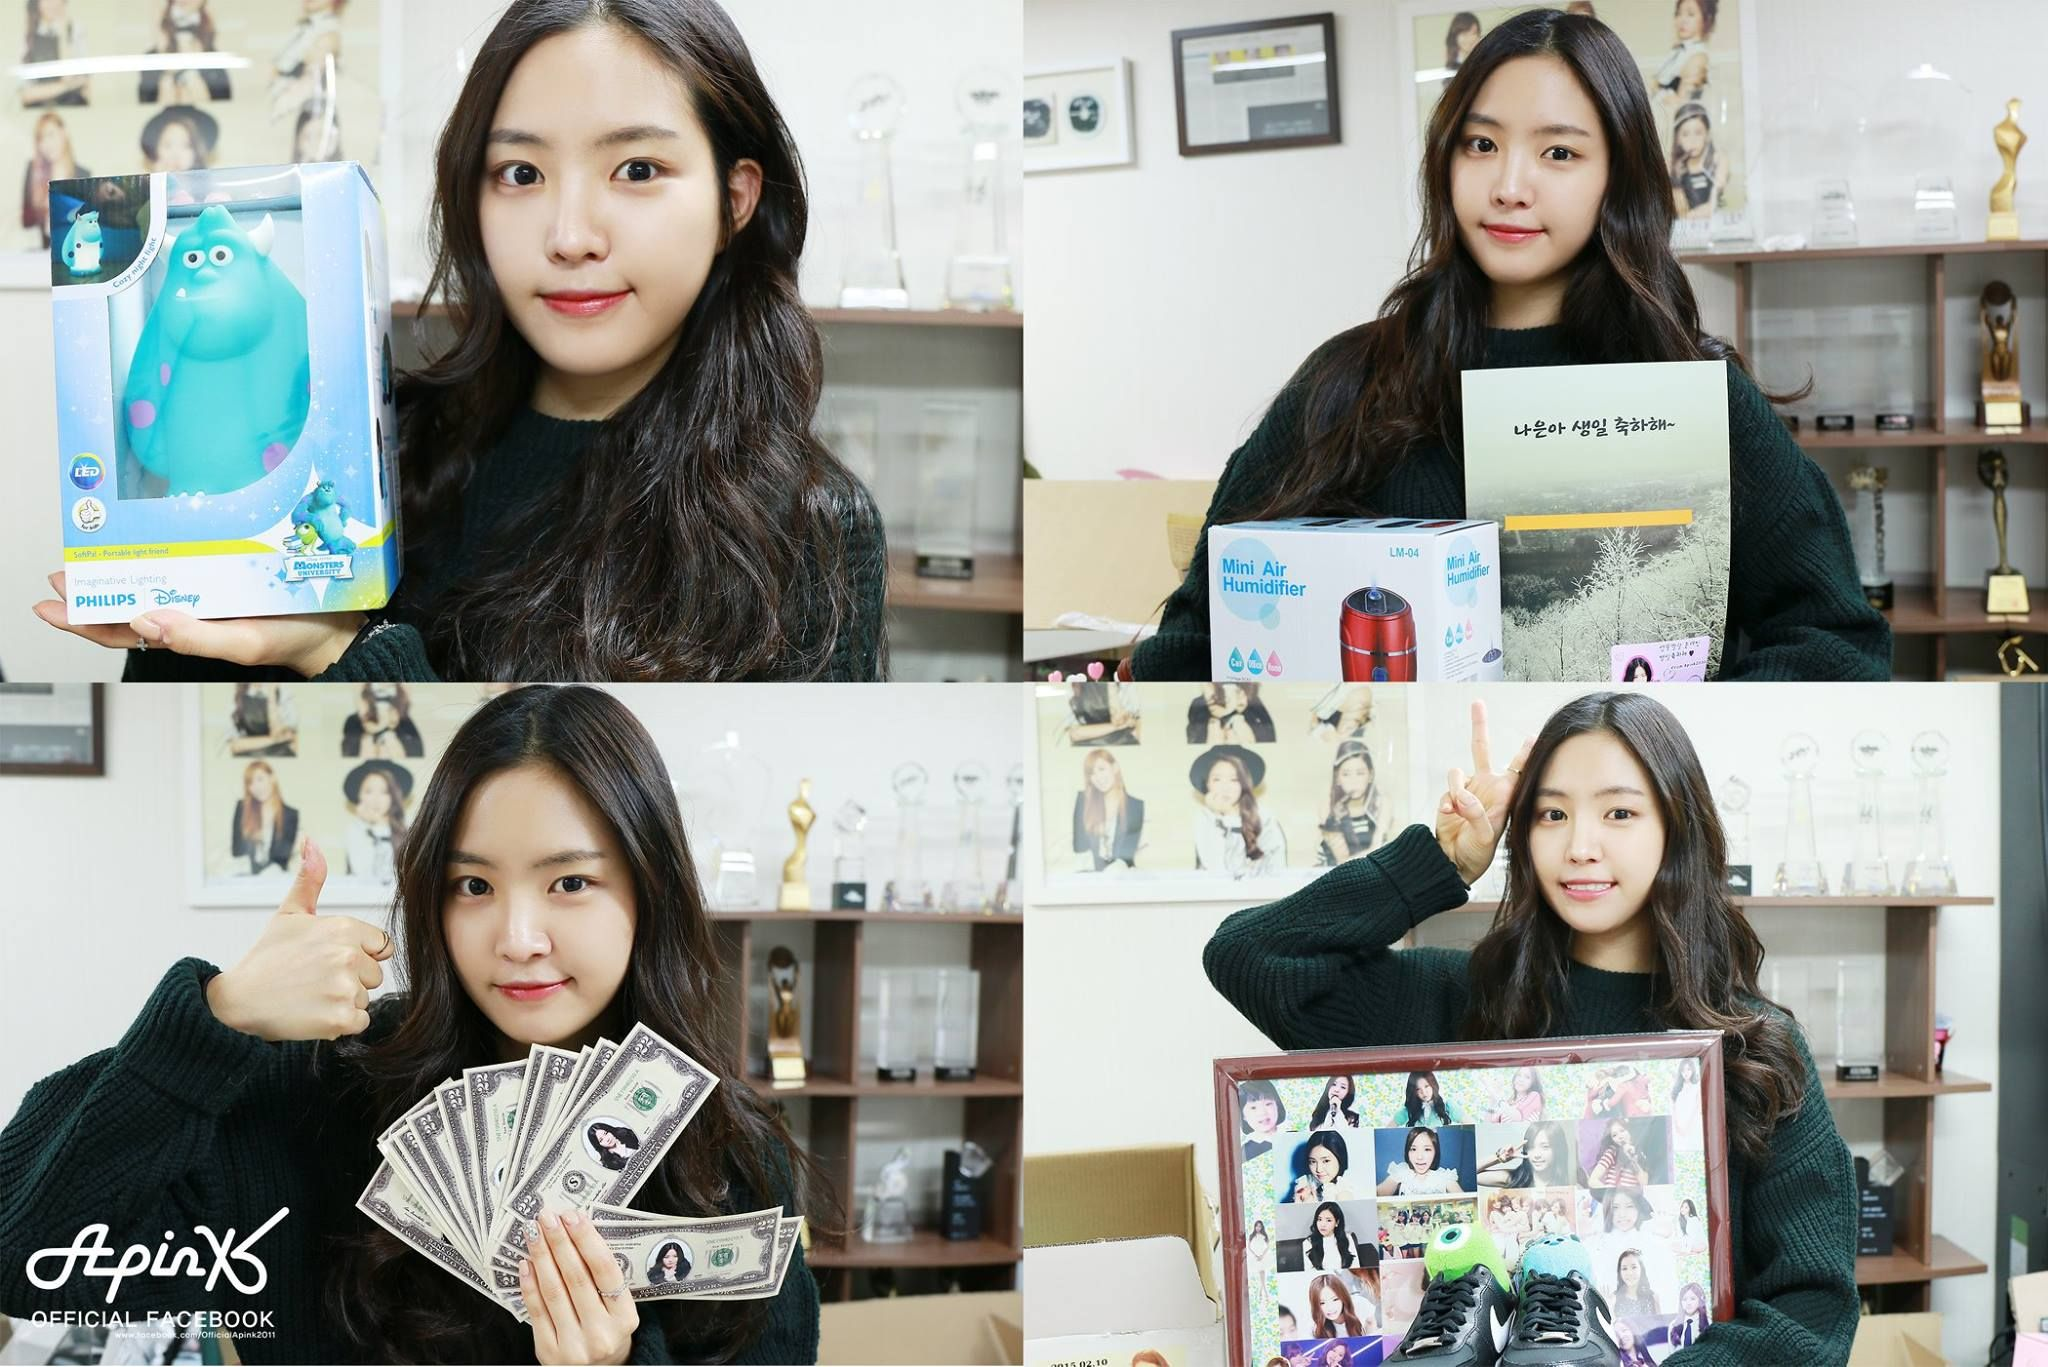 APink NaEun Reveals Birthday Gifts Sent From Fans With Fake Money